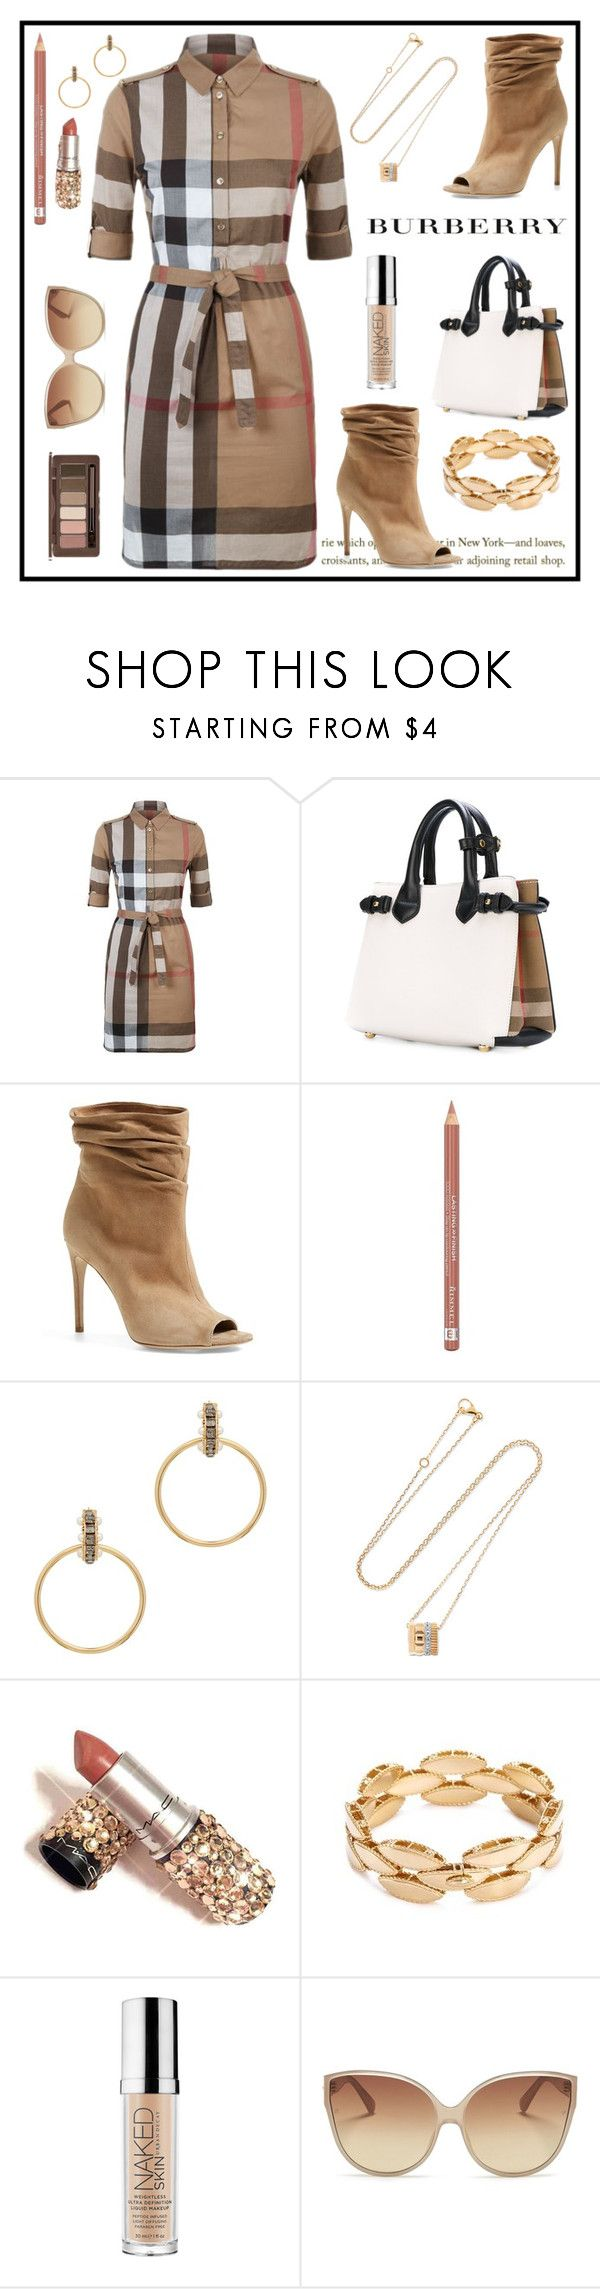 """""""Burberry"""" by sukia ❤ liked on Polyvore featuring Burberry, Rimmel, CA&LOU, Urban Decay, Linda Farrow and Skinfood"""